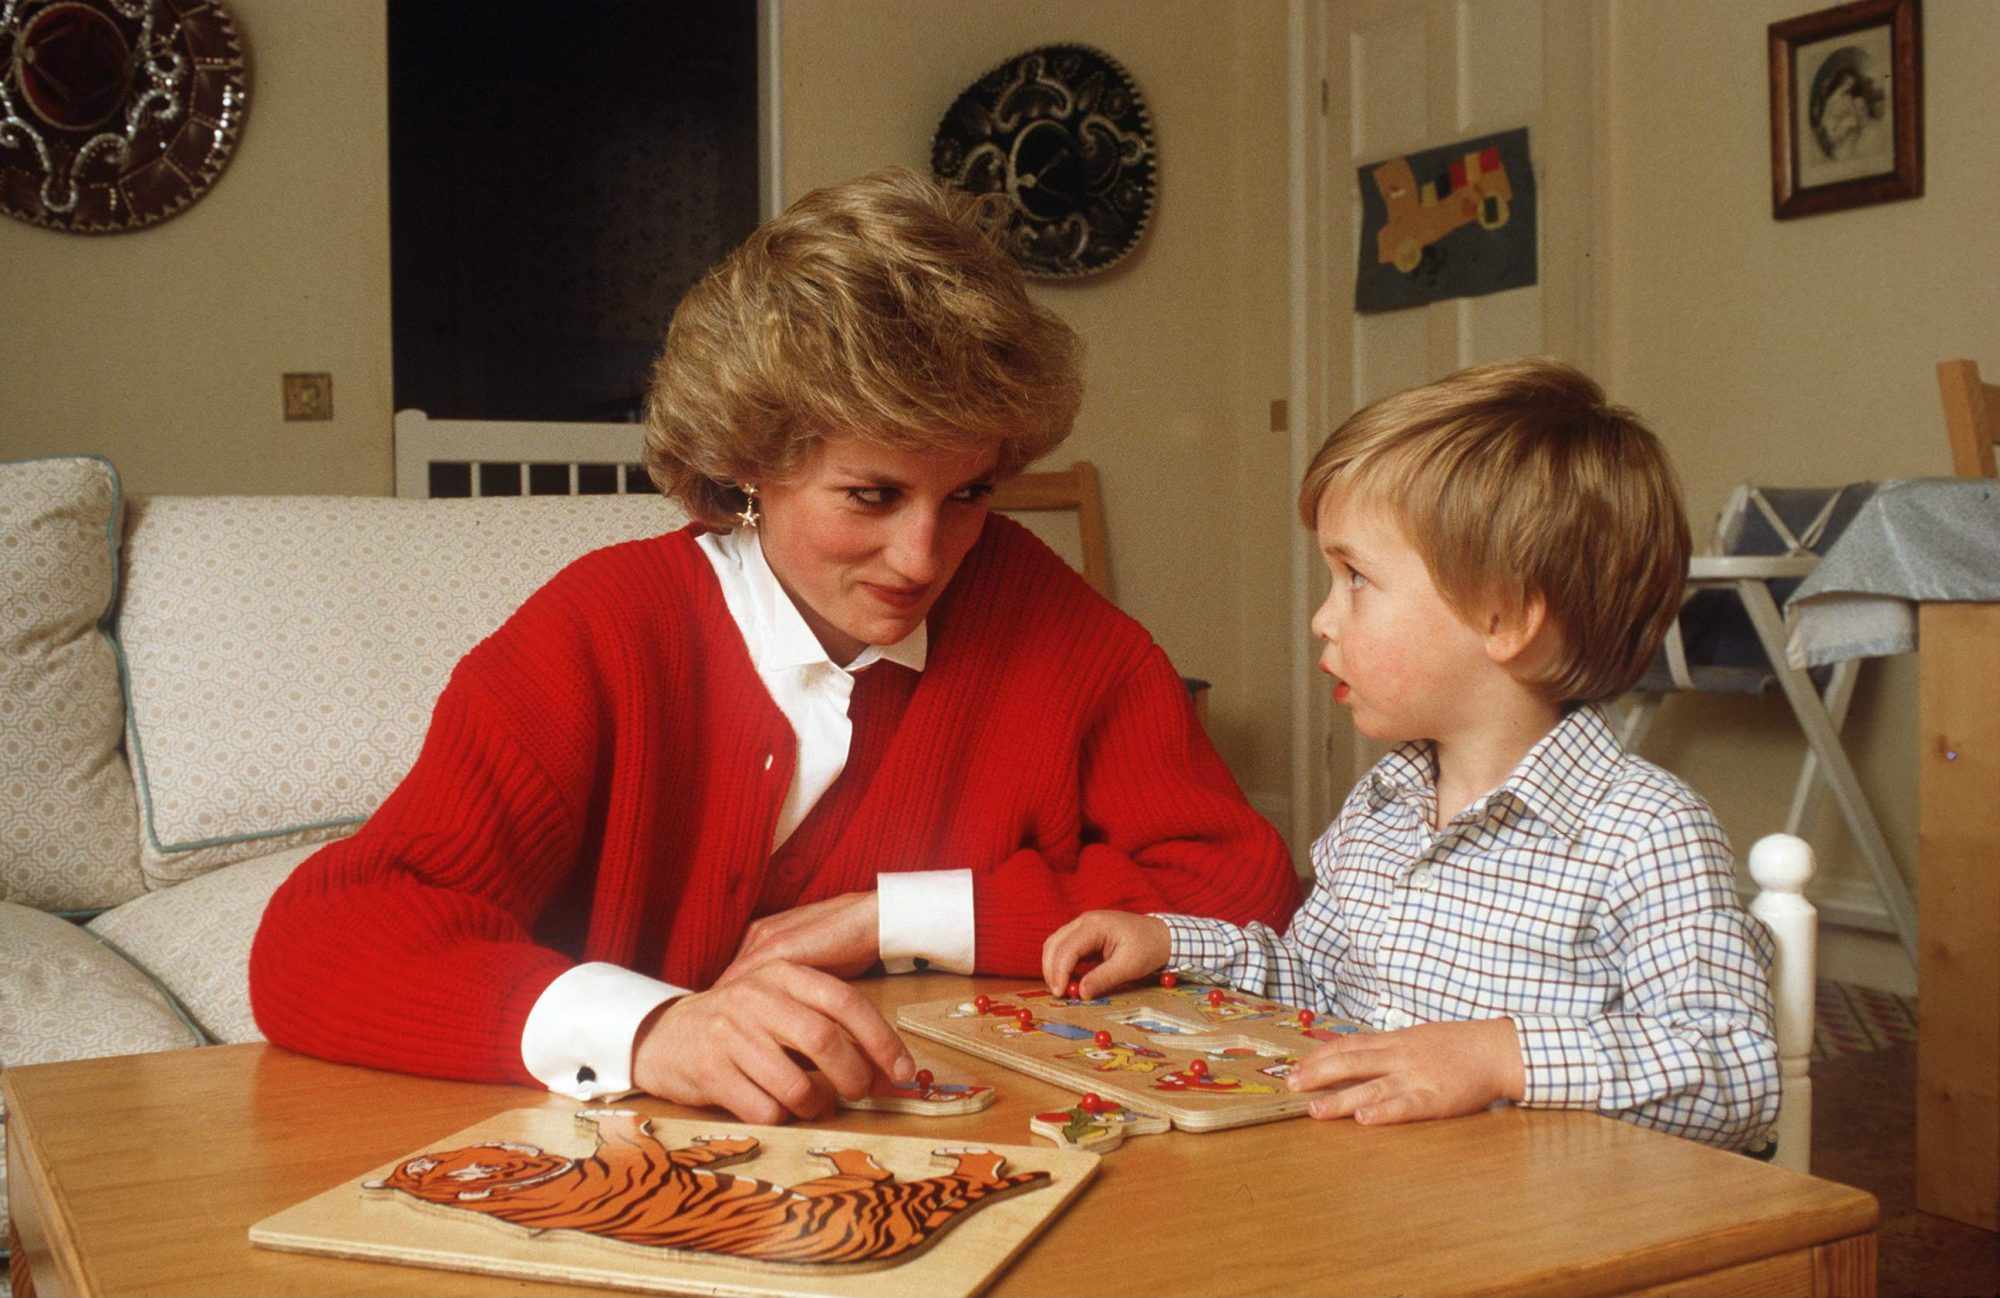 Princess Diana and Prince William Play with a Puzzle